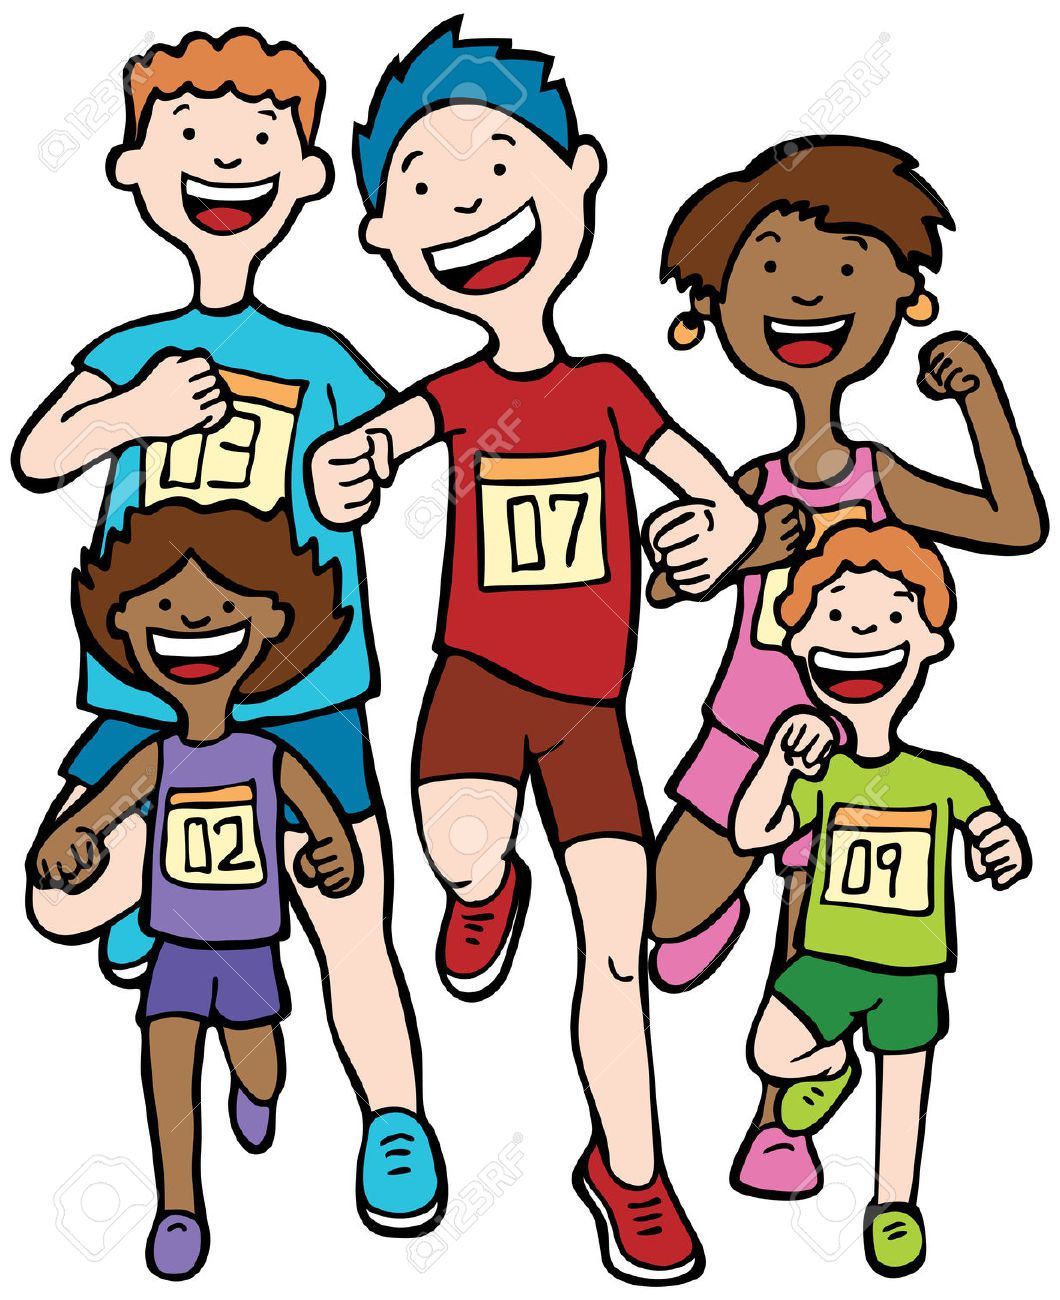 Marathon for kids